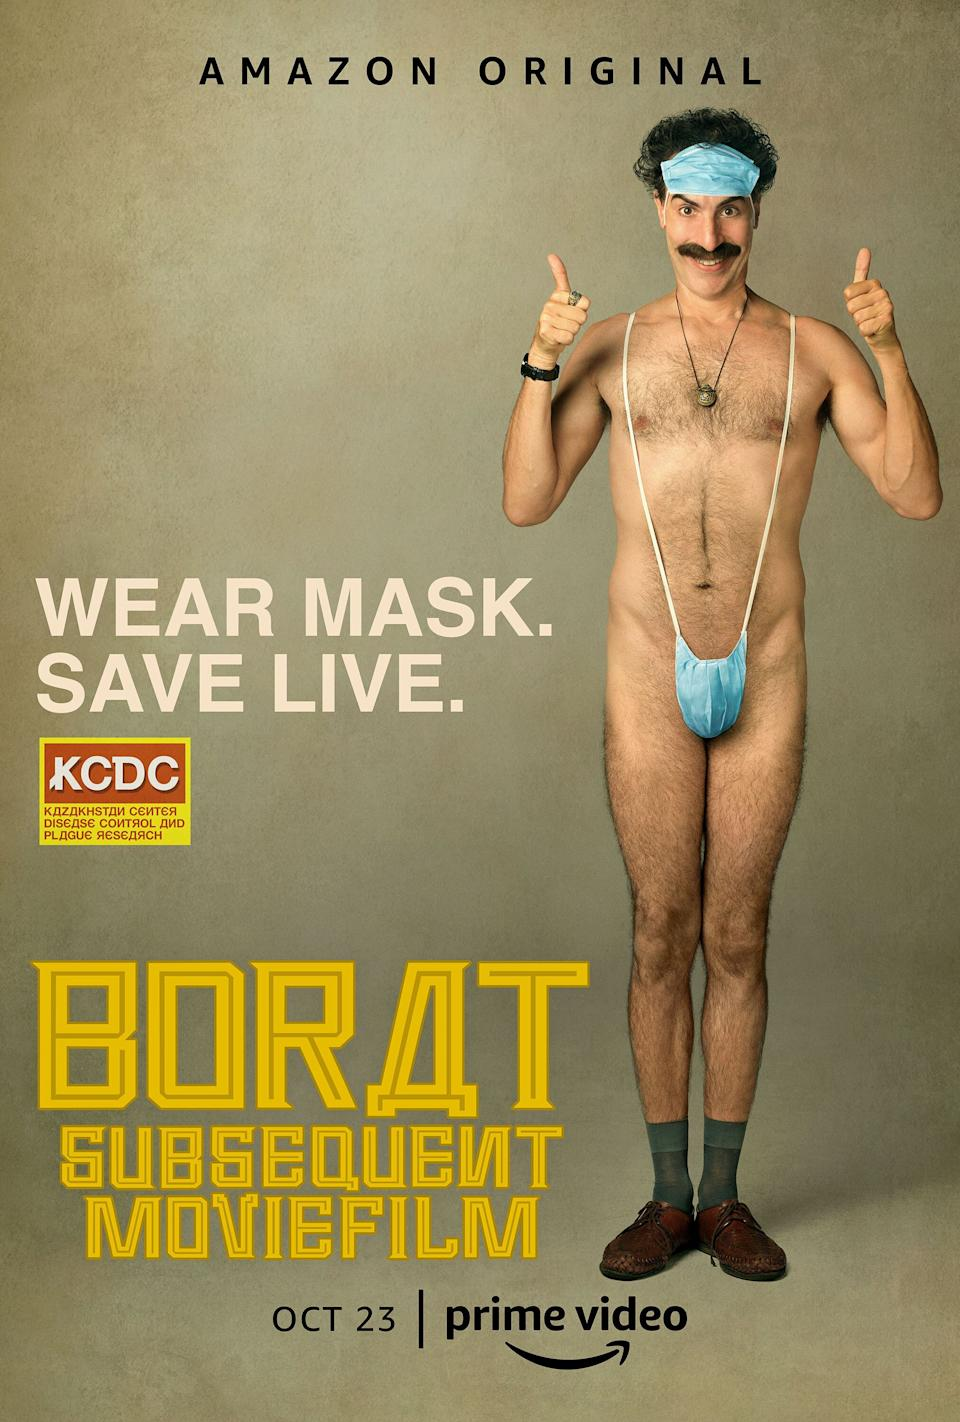 The Borat Subsequent Moviefilm poster (Photo: Amazon Prime Video)